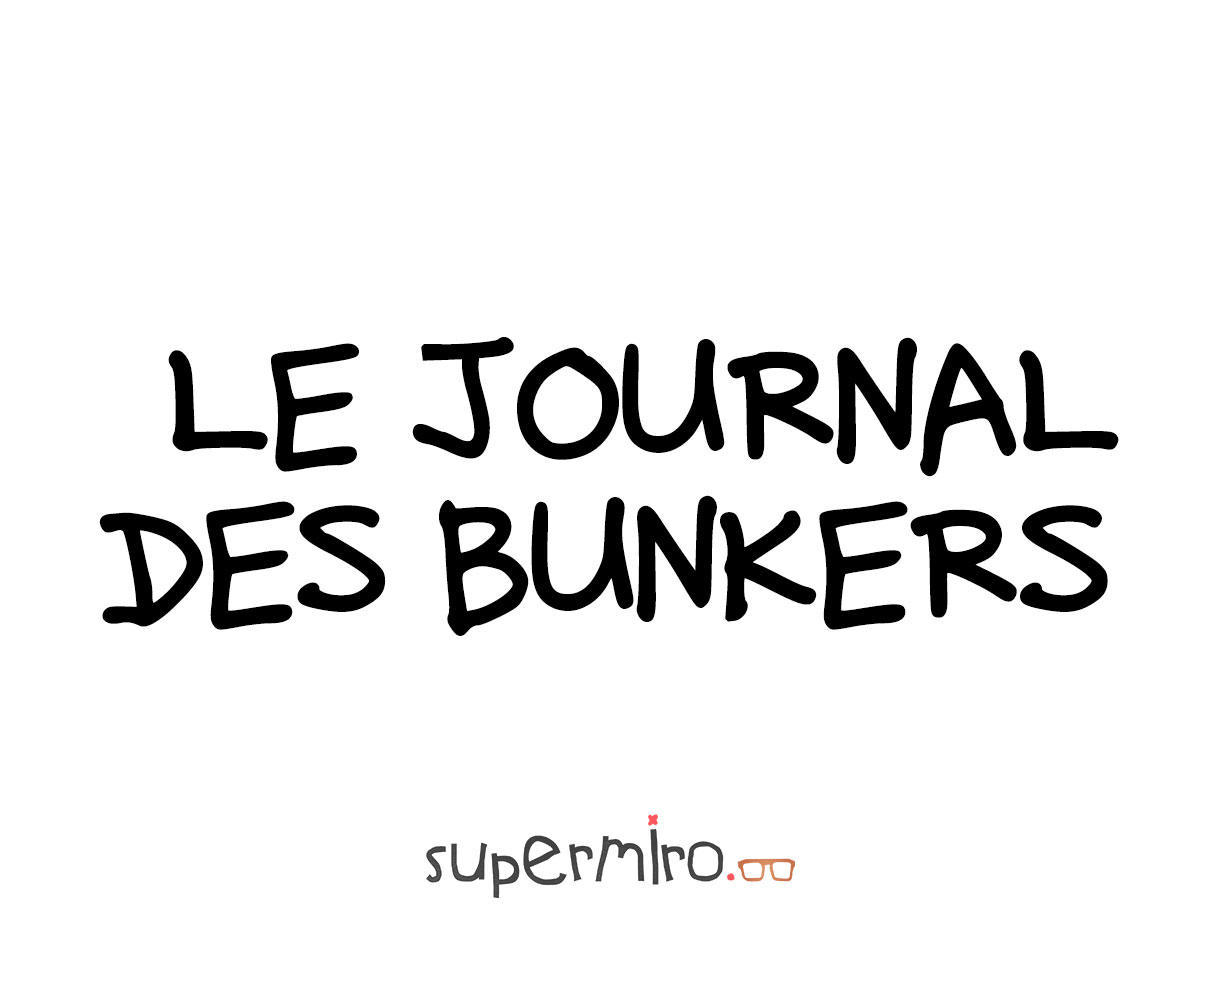 The Bunkers' Journal